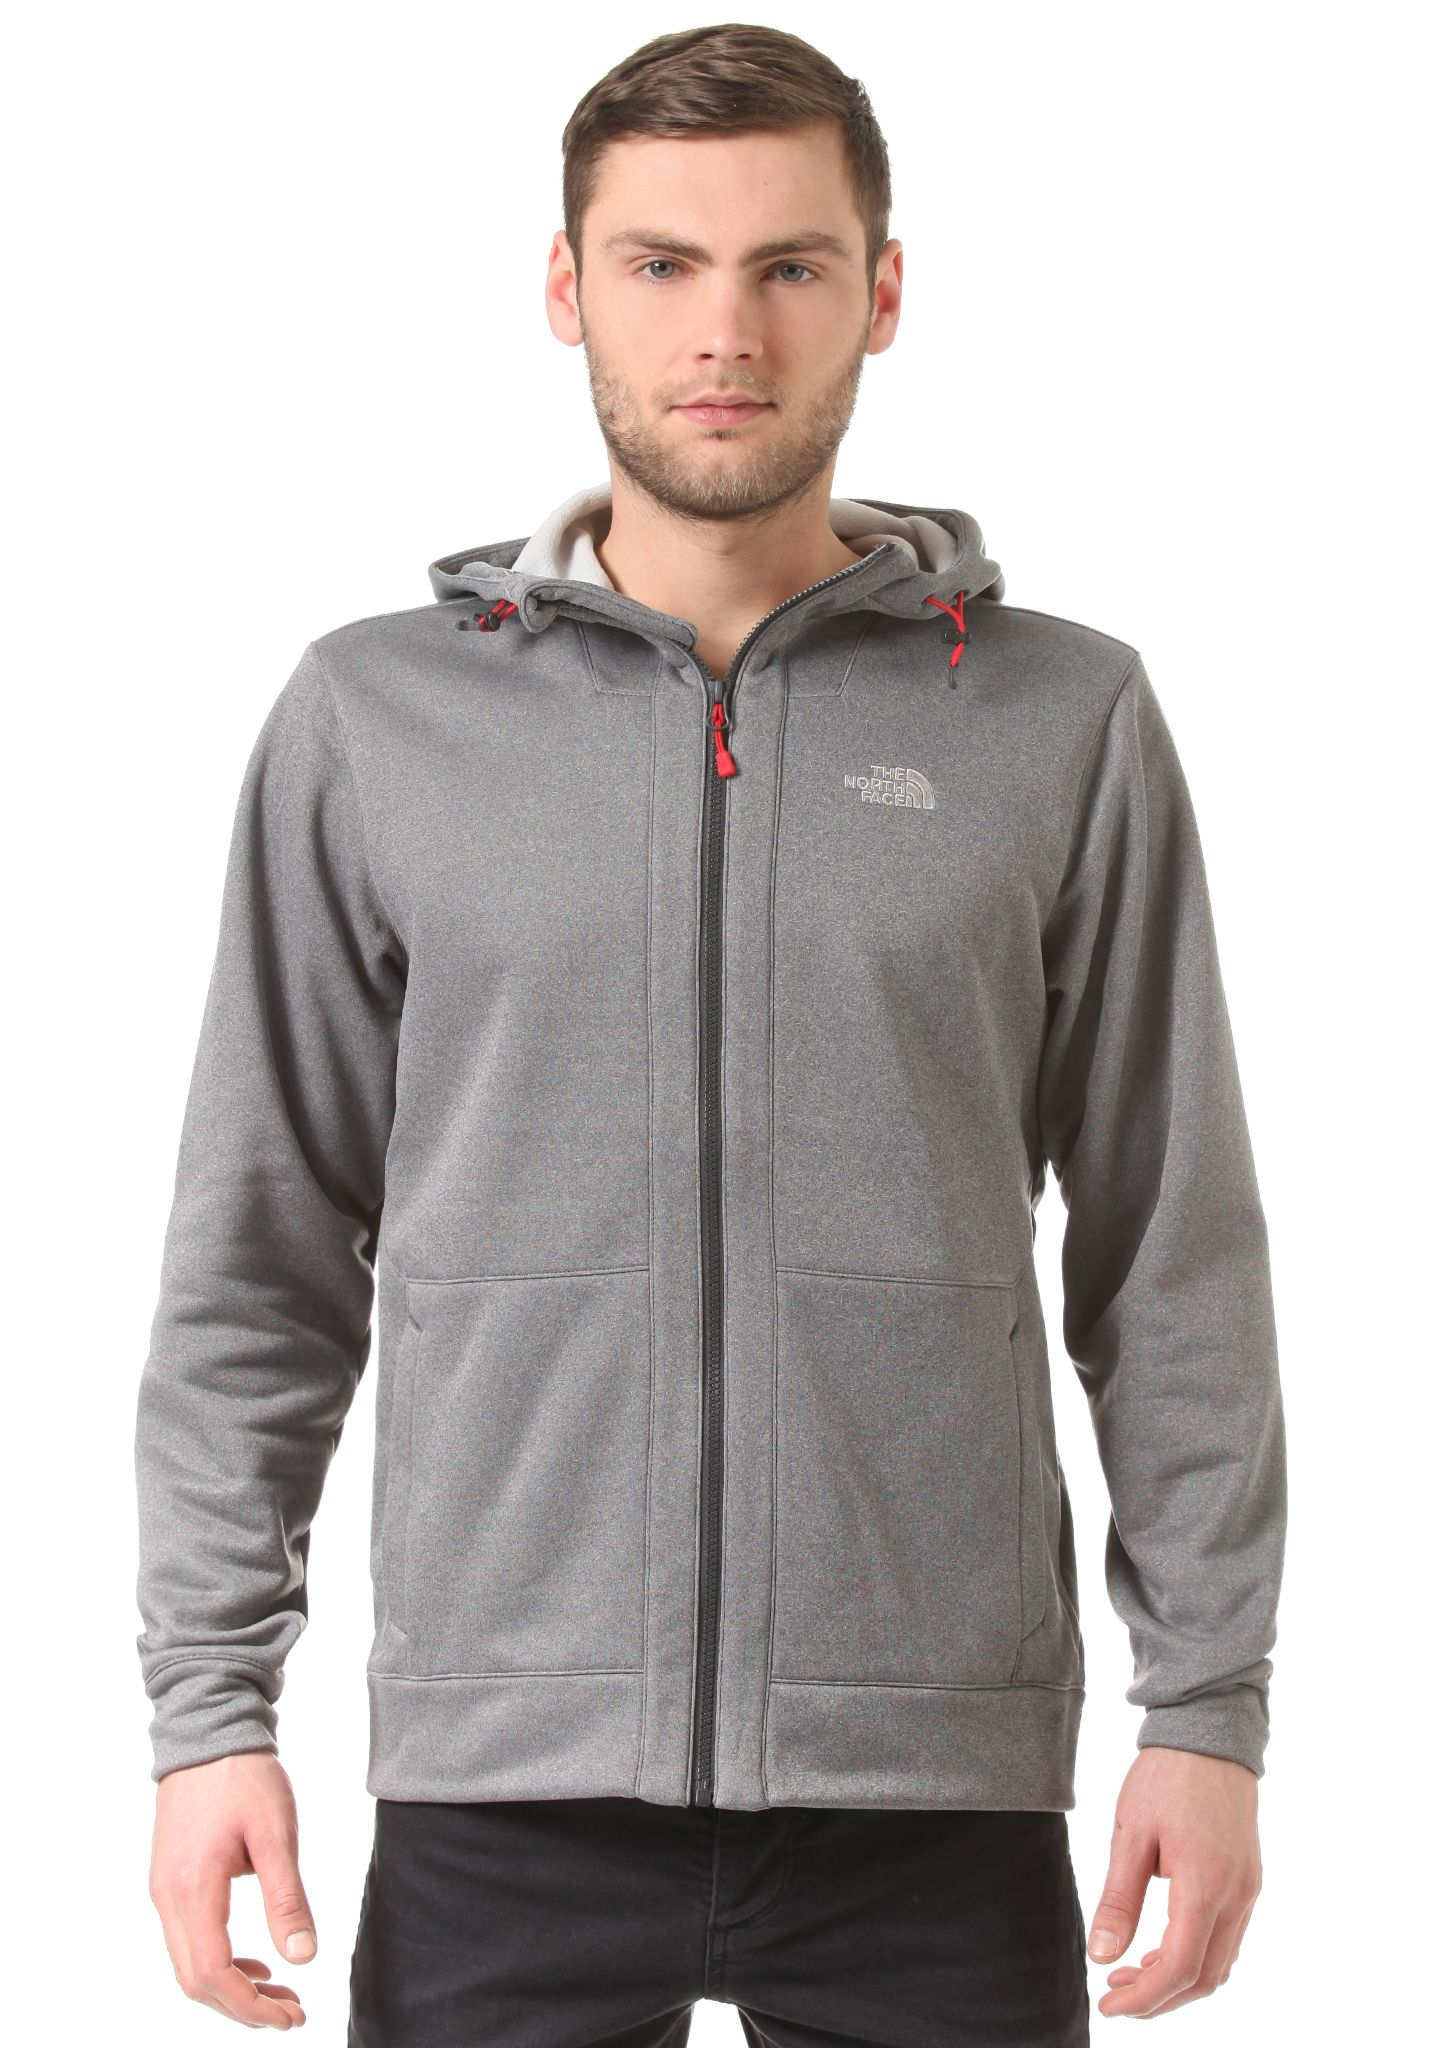 THE NORTH FACE Mittellegi Full Zip - Hooded Jacket for Men - Grey - Planet  Sports aeb80d0bed